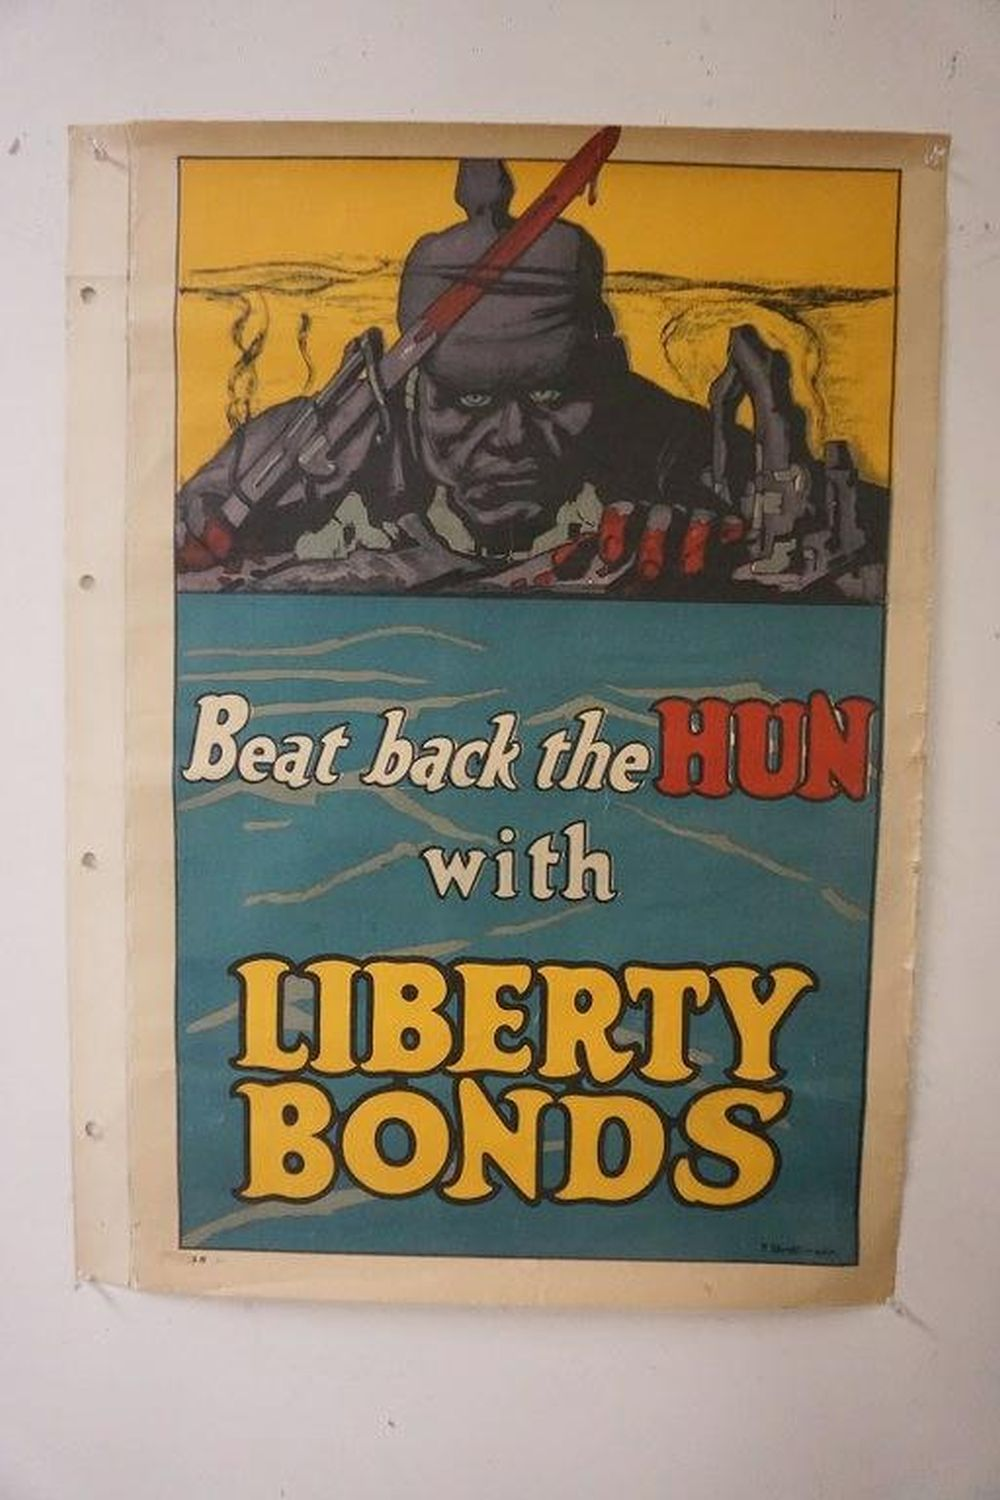 BEAT THE HUN WITH LIBERTY BONDS WW I POSTER, LINEN BACKED, APPEARS TO HAVE BEEN IN ALBUM OF POSTERS AT ONE TIME, NICE OVERALL CONDITION, WAS FOUND ROLLED. F. STROTHMANN IS IN BOTTOM RIGHT CORNER.  SOME SMALL BORDER CRINKLES?.